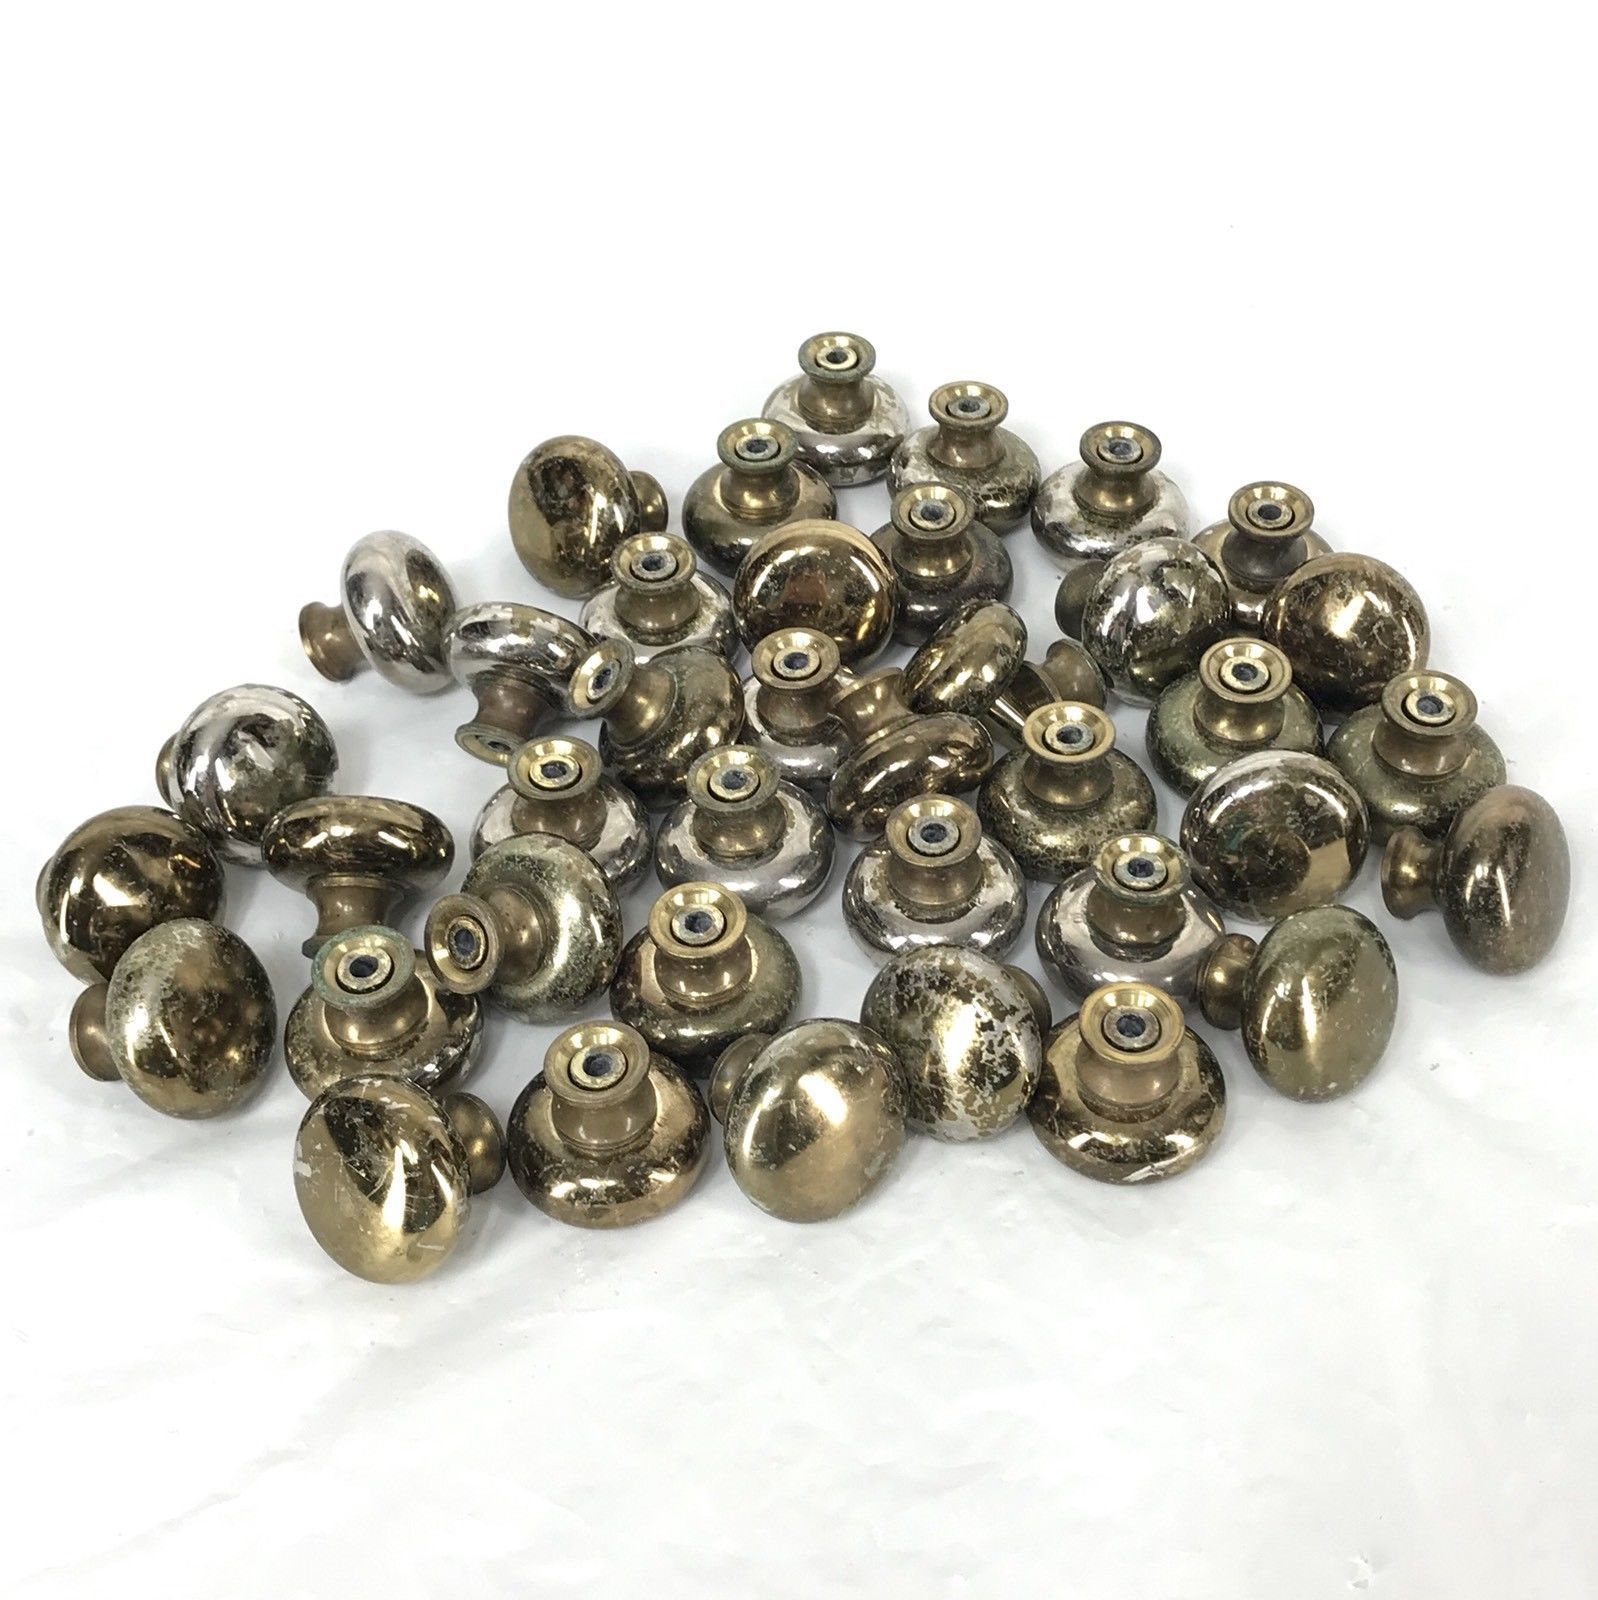 Vintage Mushroom Cabinet Drawer Knob Pull Handle Plated Distressed Lot of 39